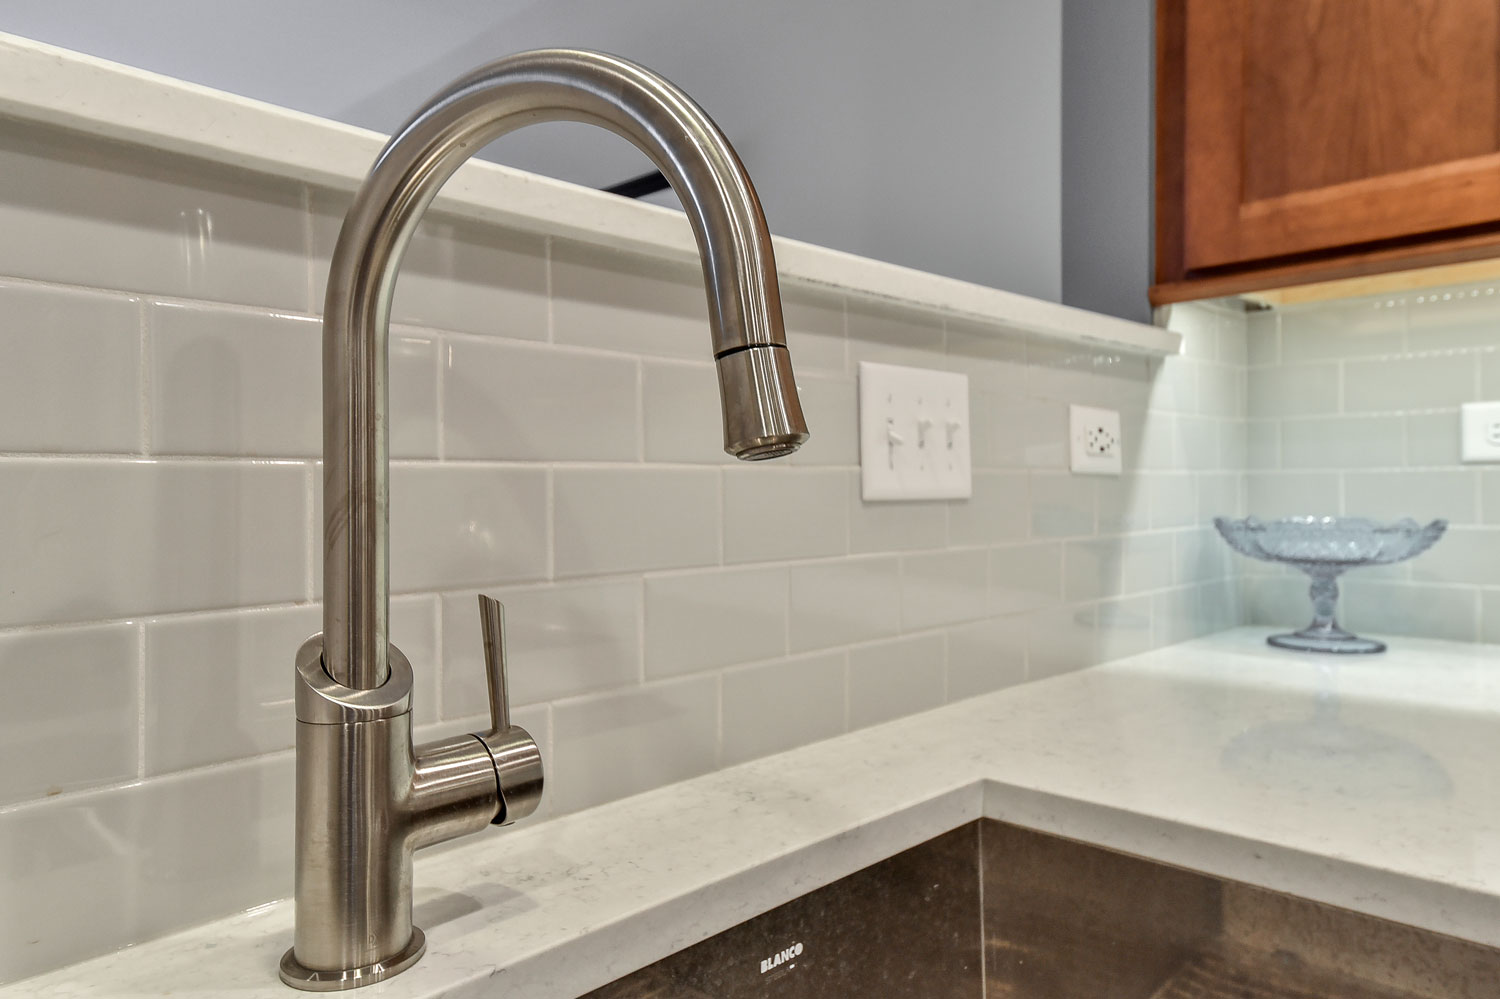 Richards Kitchen Remodel Pictures Home Remodeling Contractors